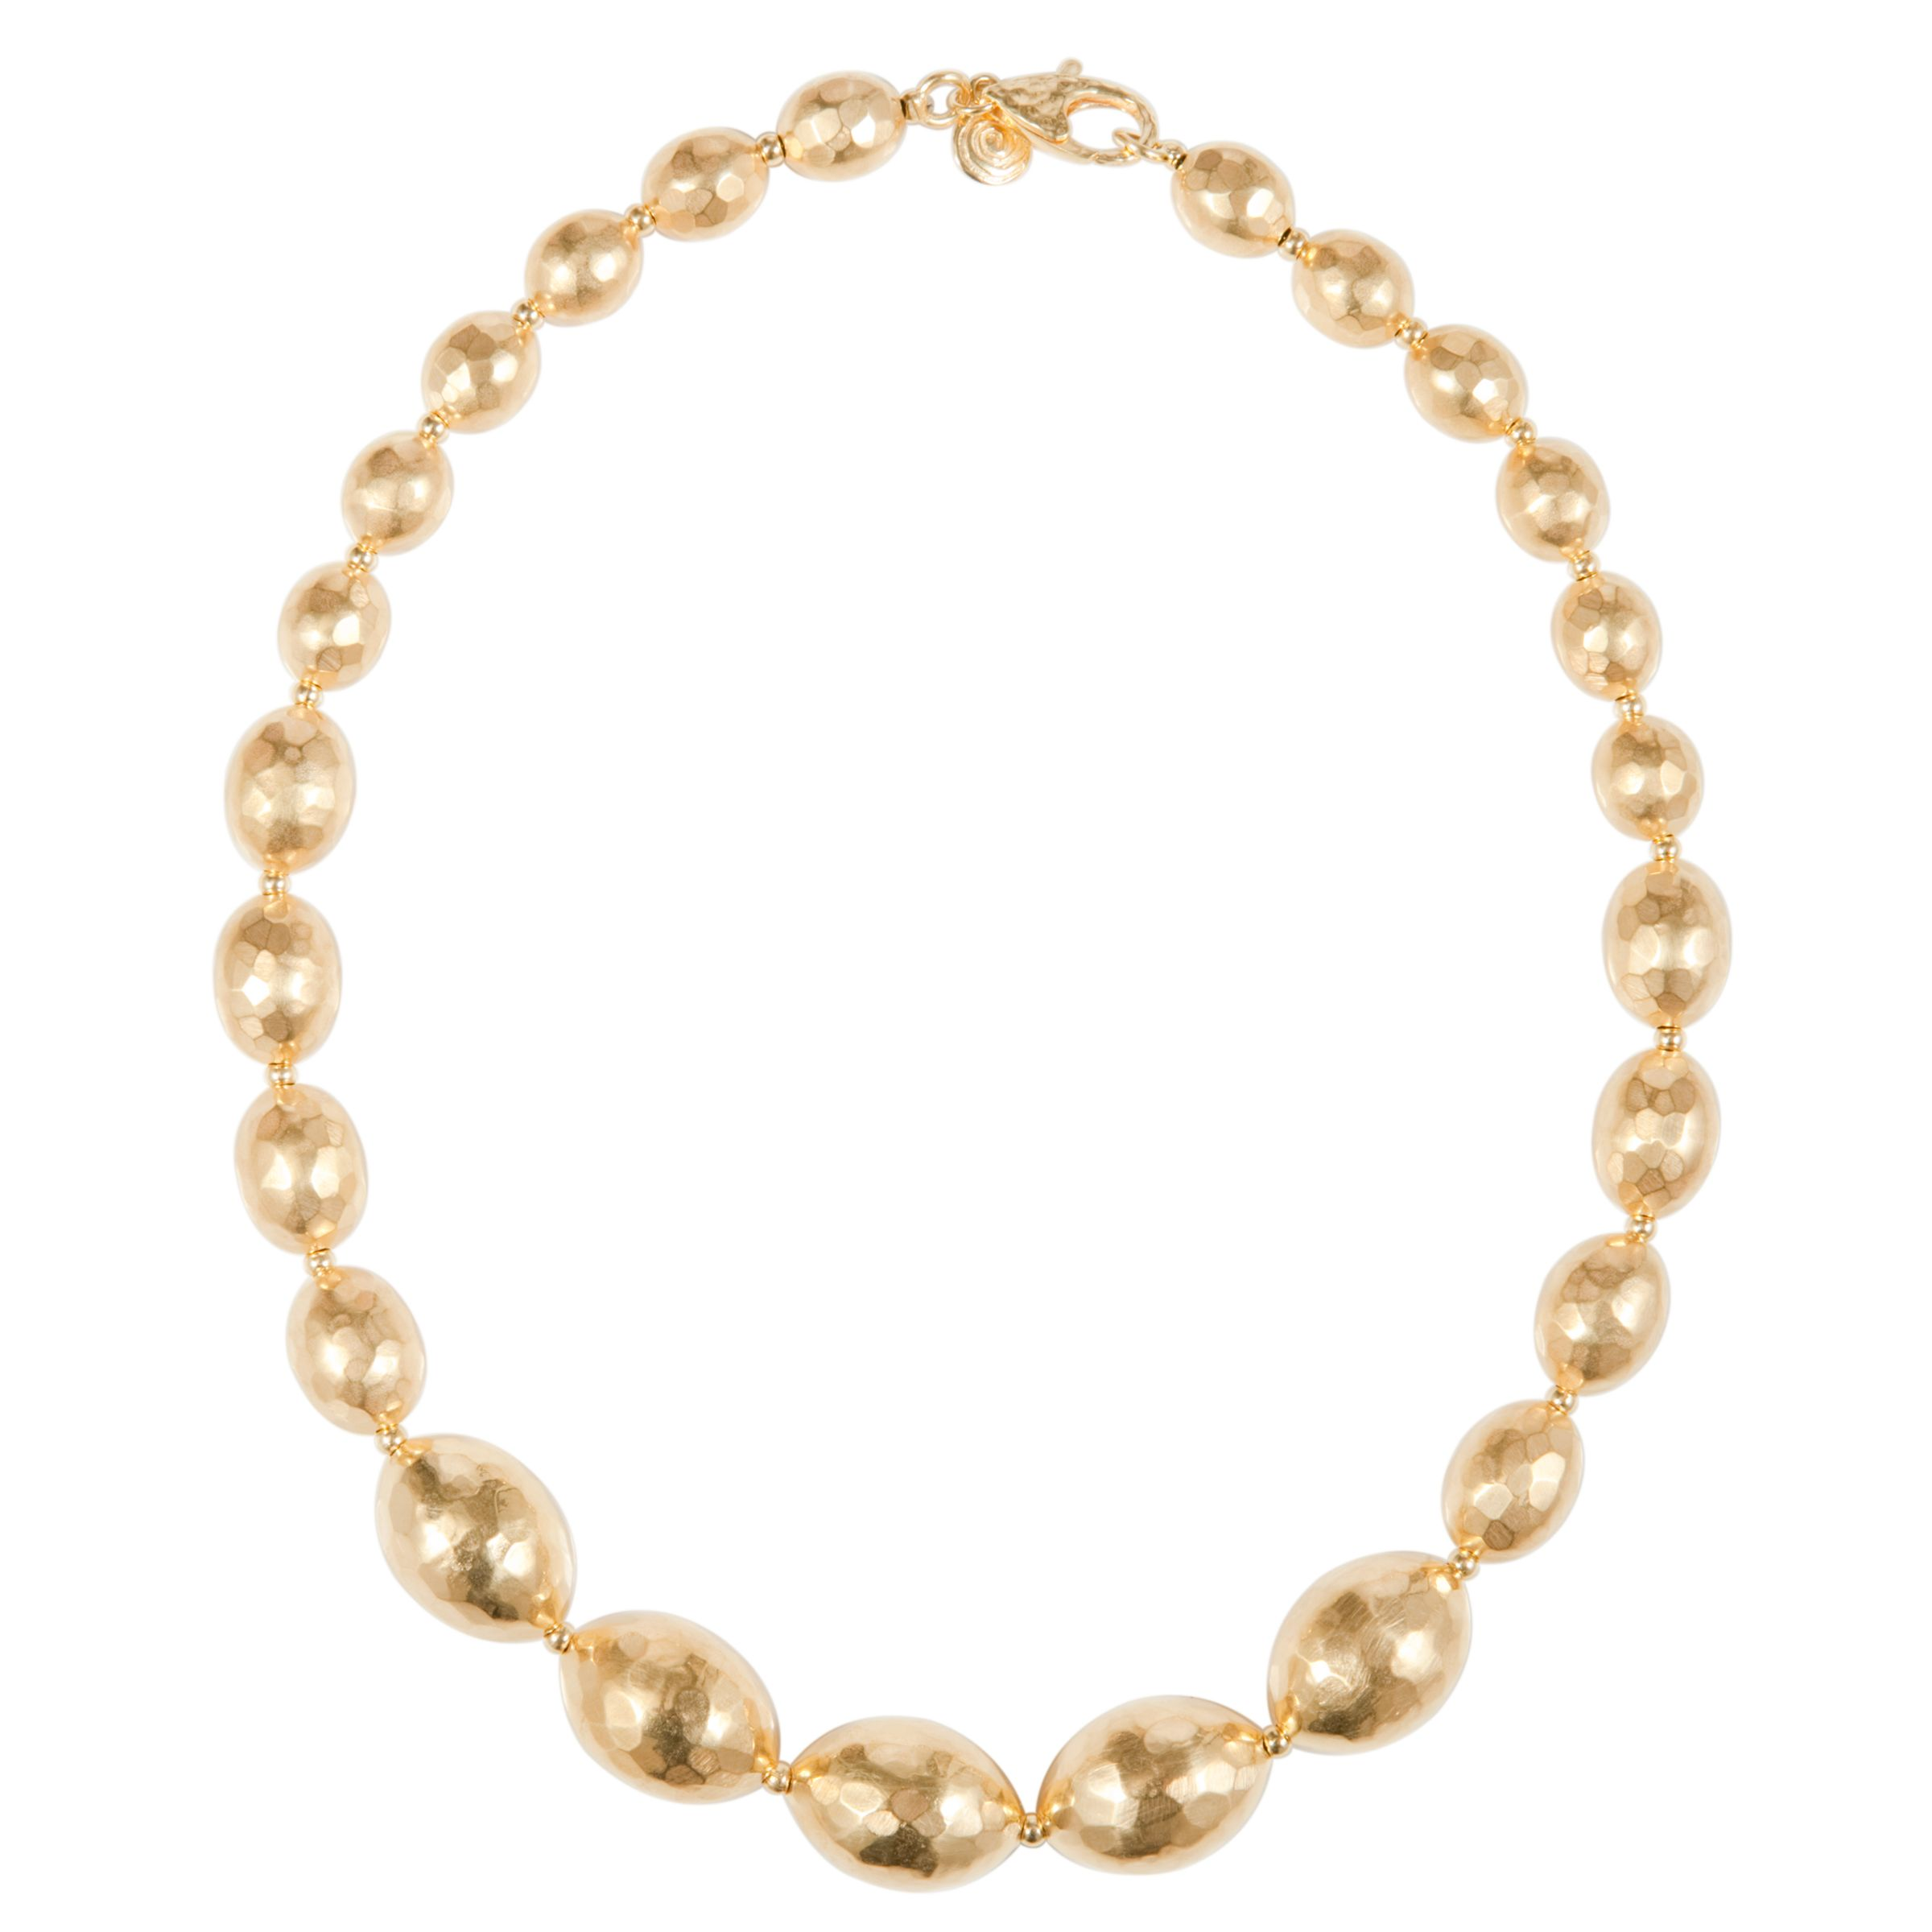 Etrusca 18ct Gold Plated Graduated Hammered Bead Necklace